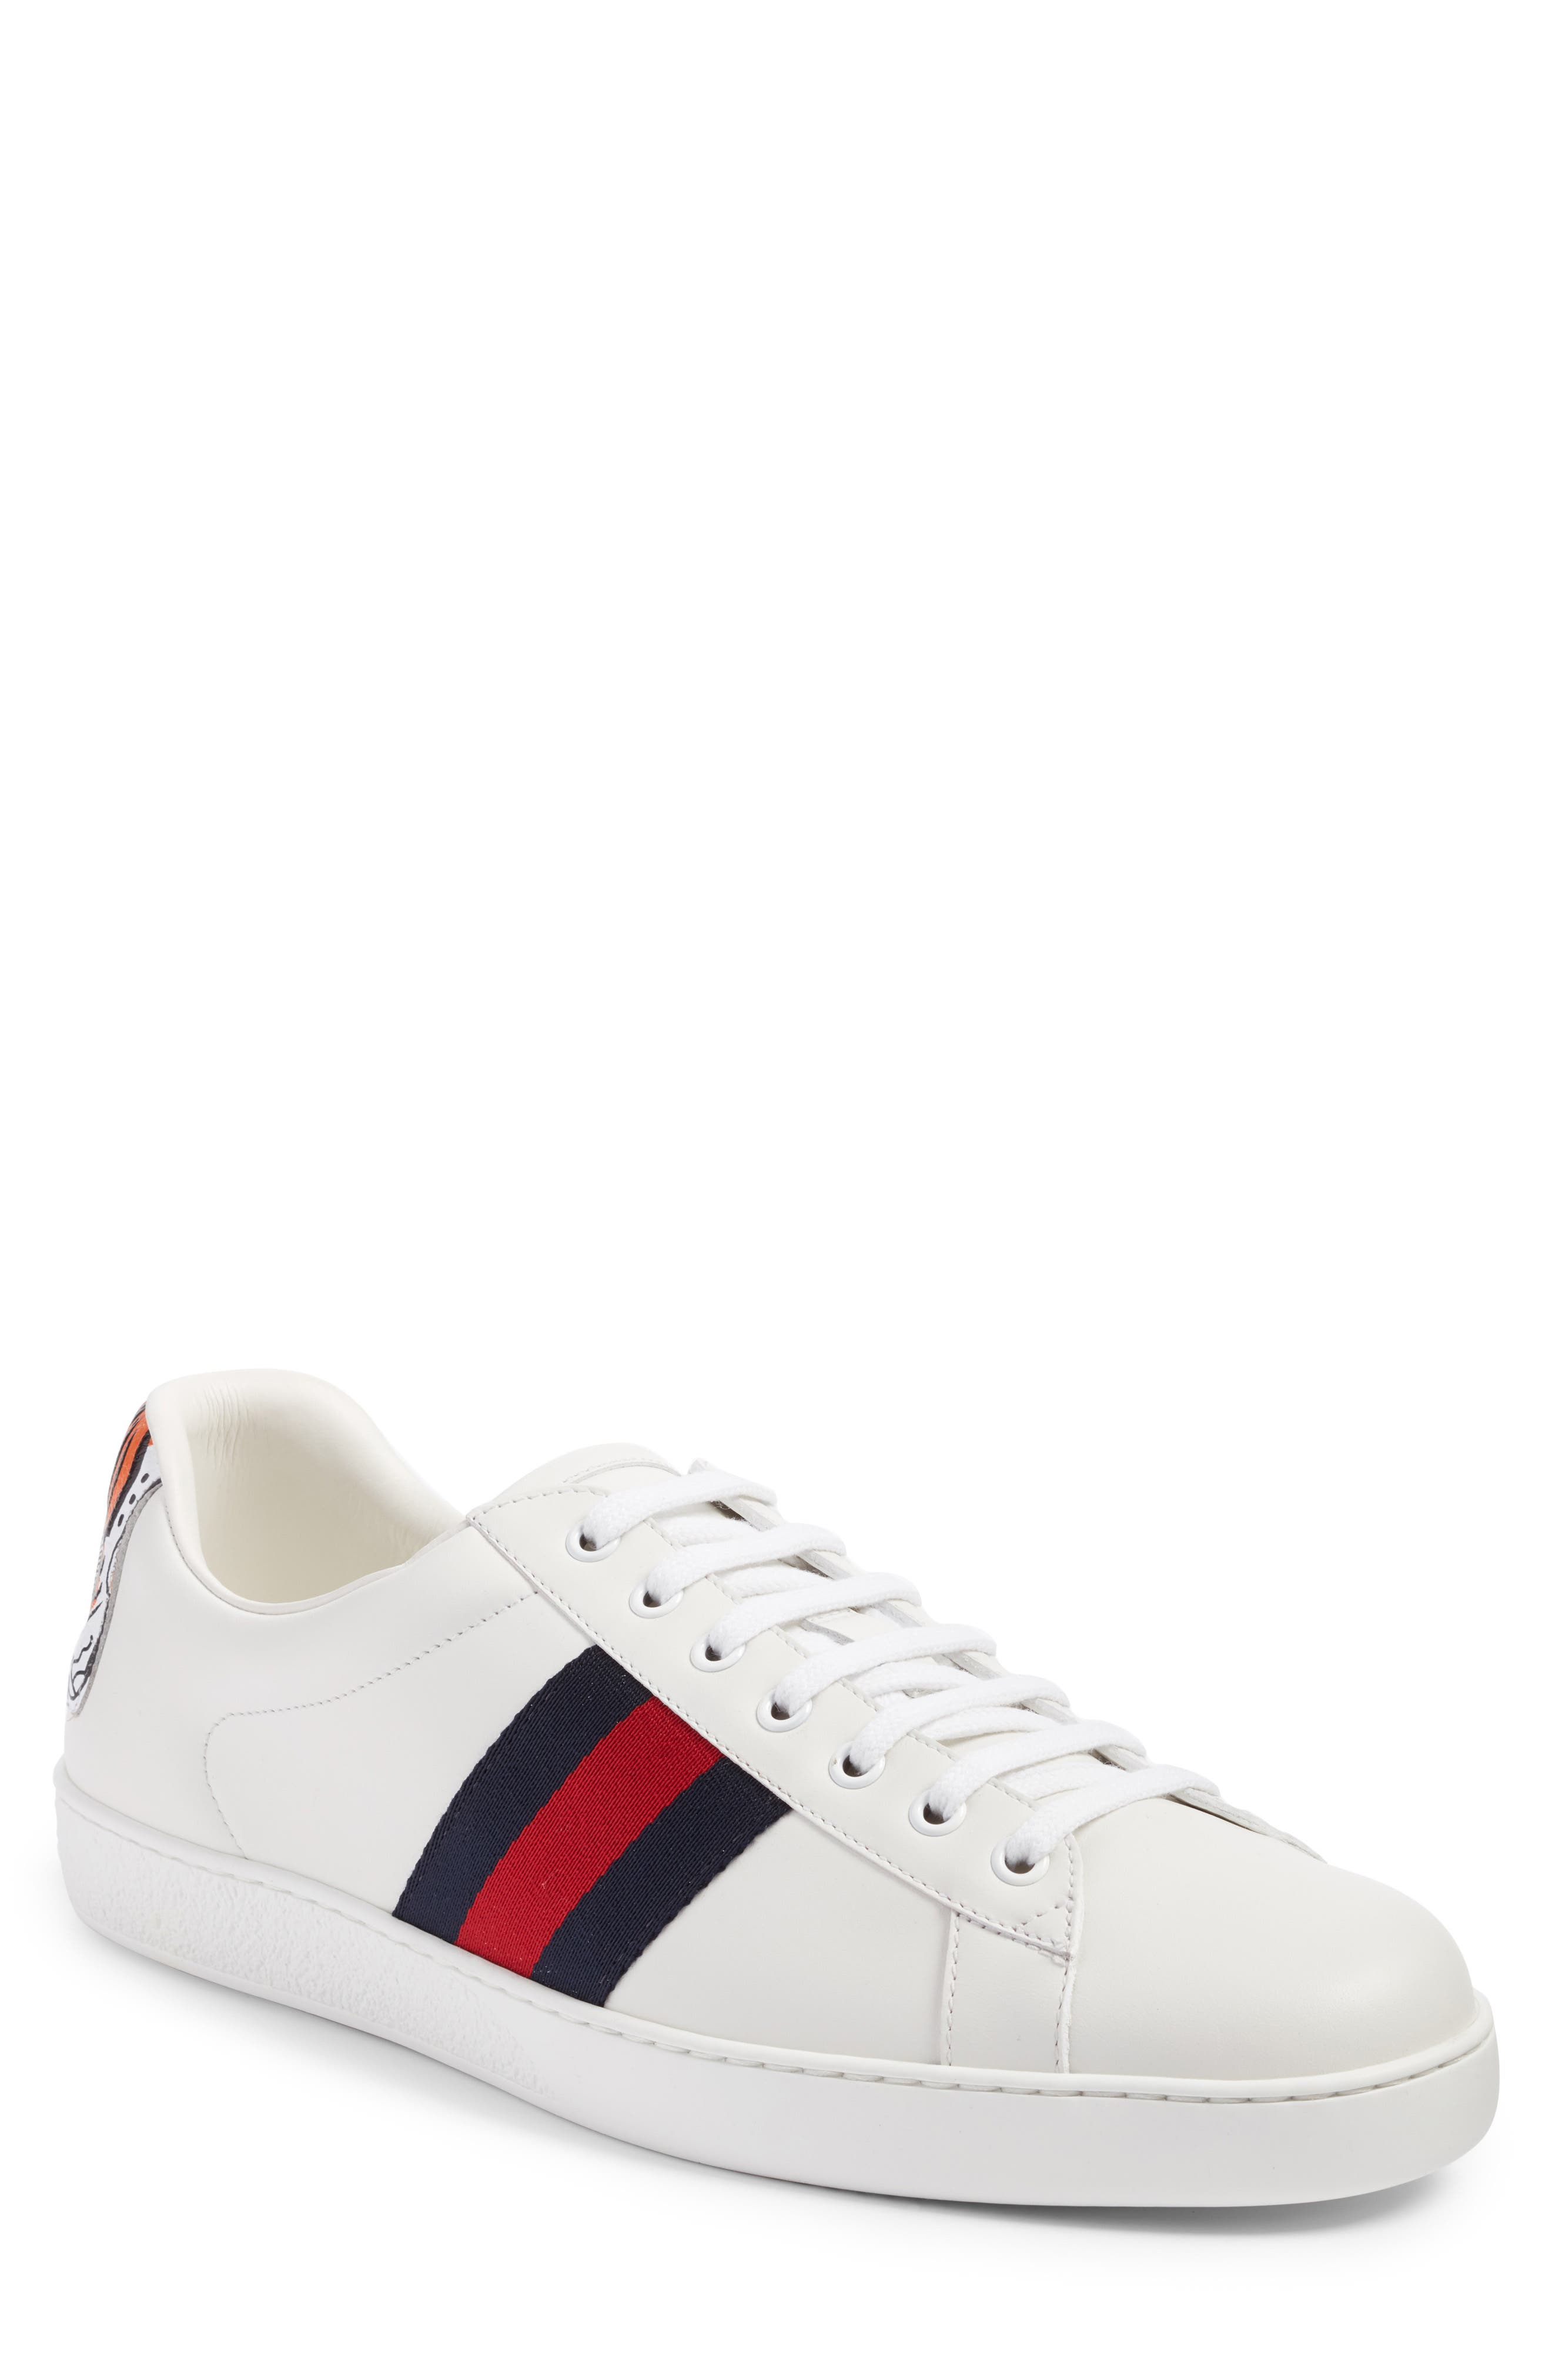 New Ace Tiger Sneaker,                             Main thumbnail 1, color,                             176